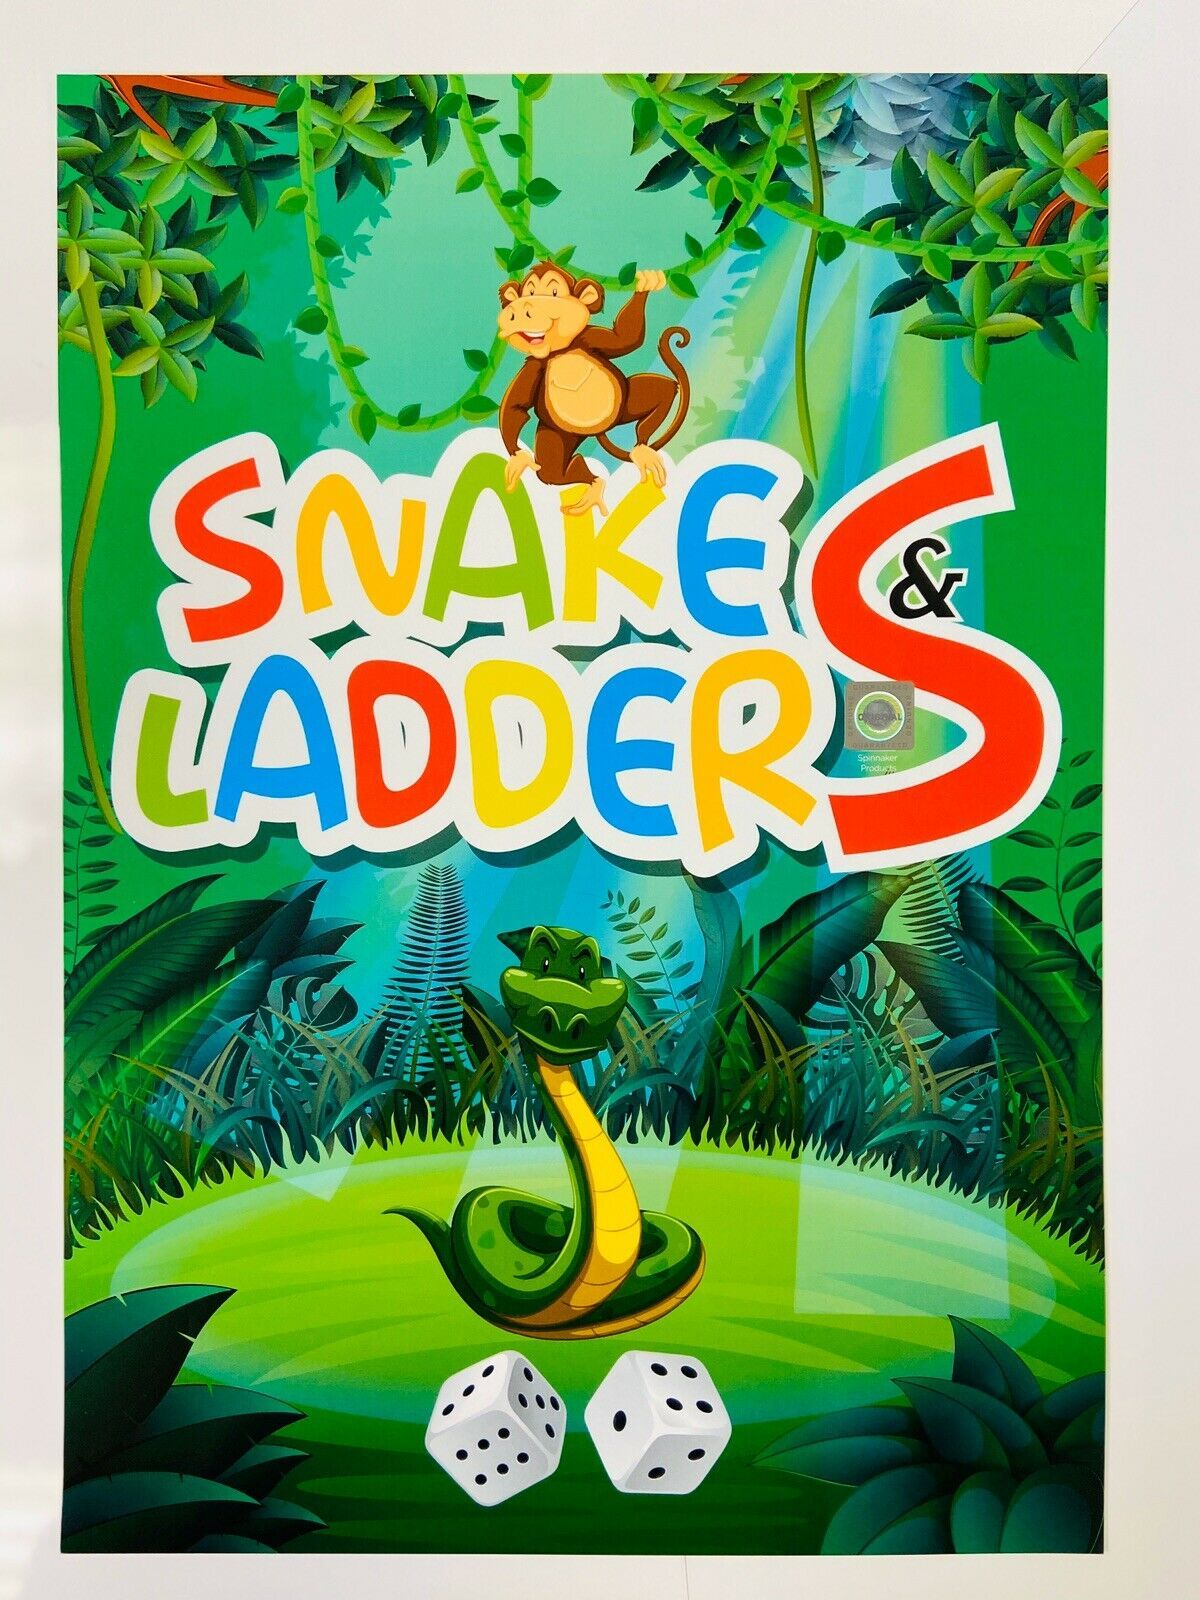 Pin on Snakes and Ladders Board Games